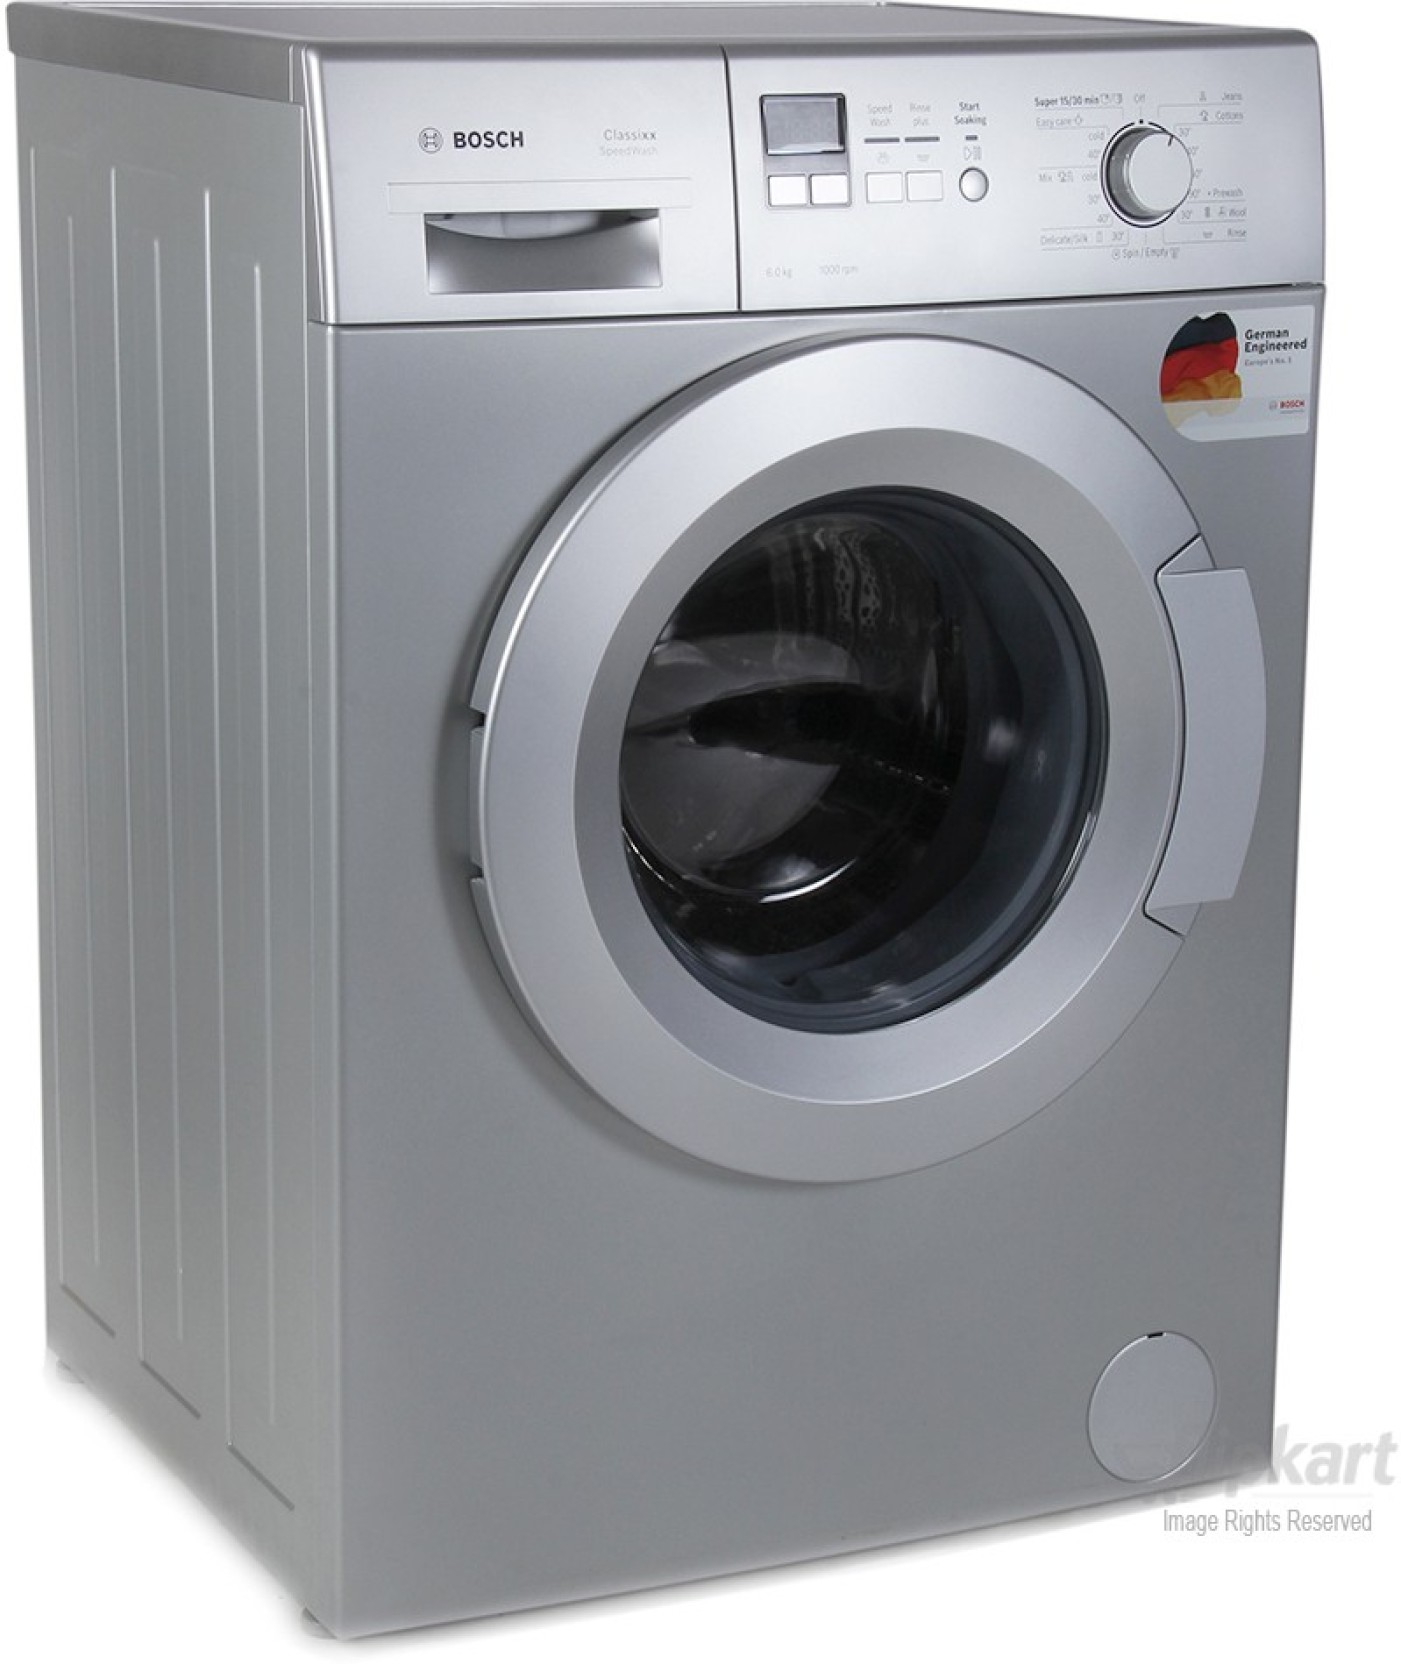 Bosch 6 kg Fully Automatic Front Load Washing Machine. Home